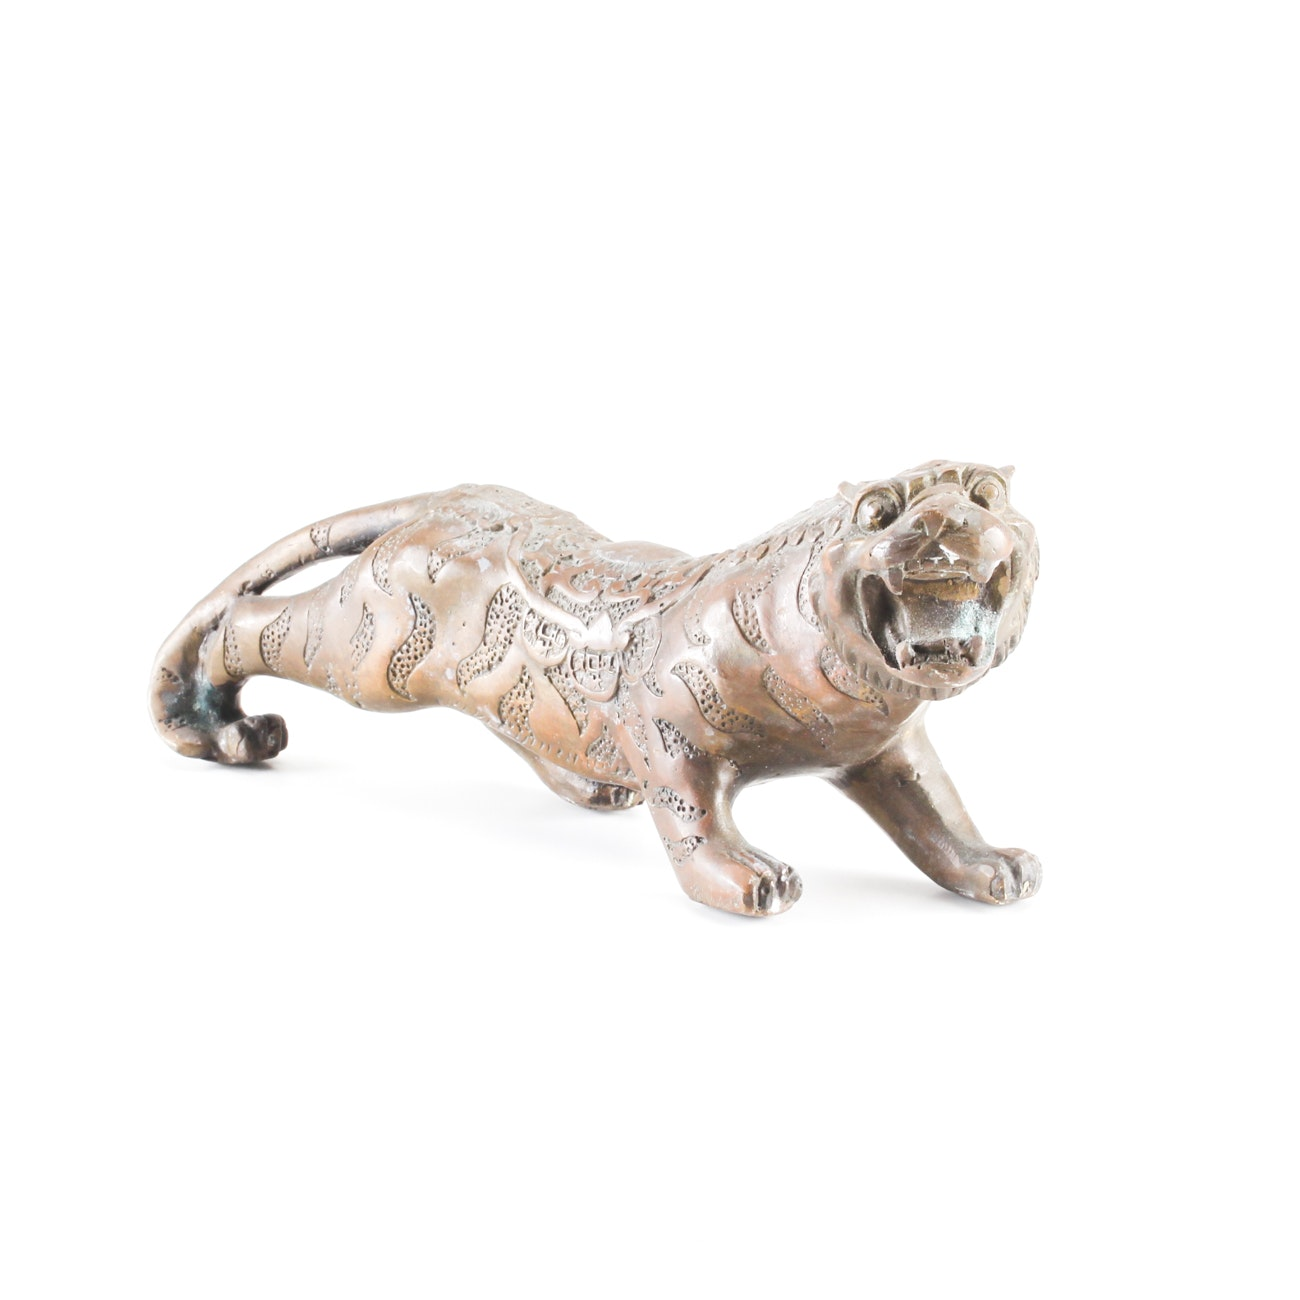 Chinese Tiger Figure